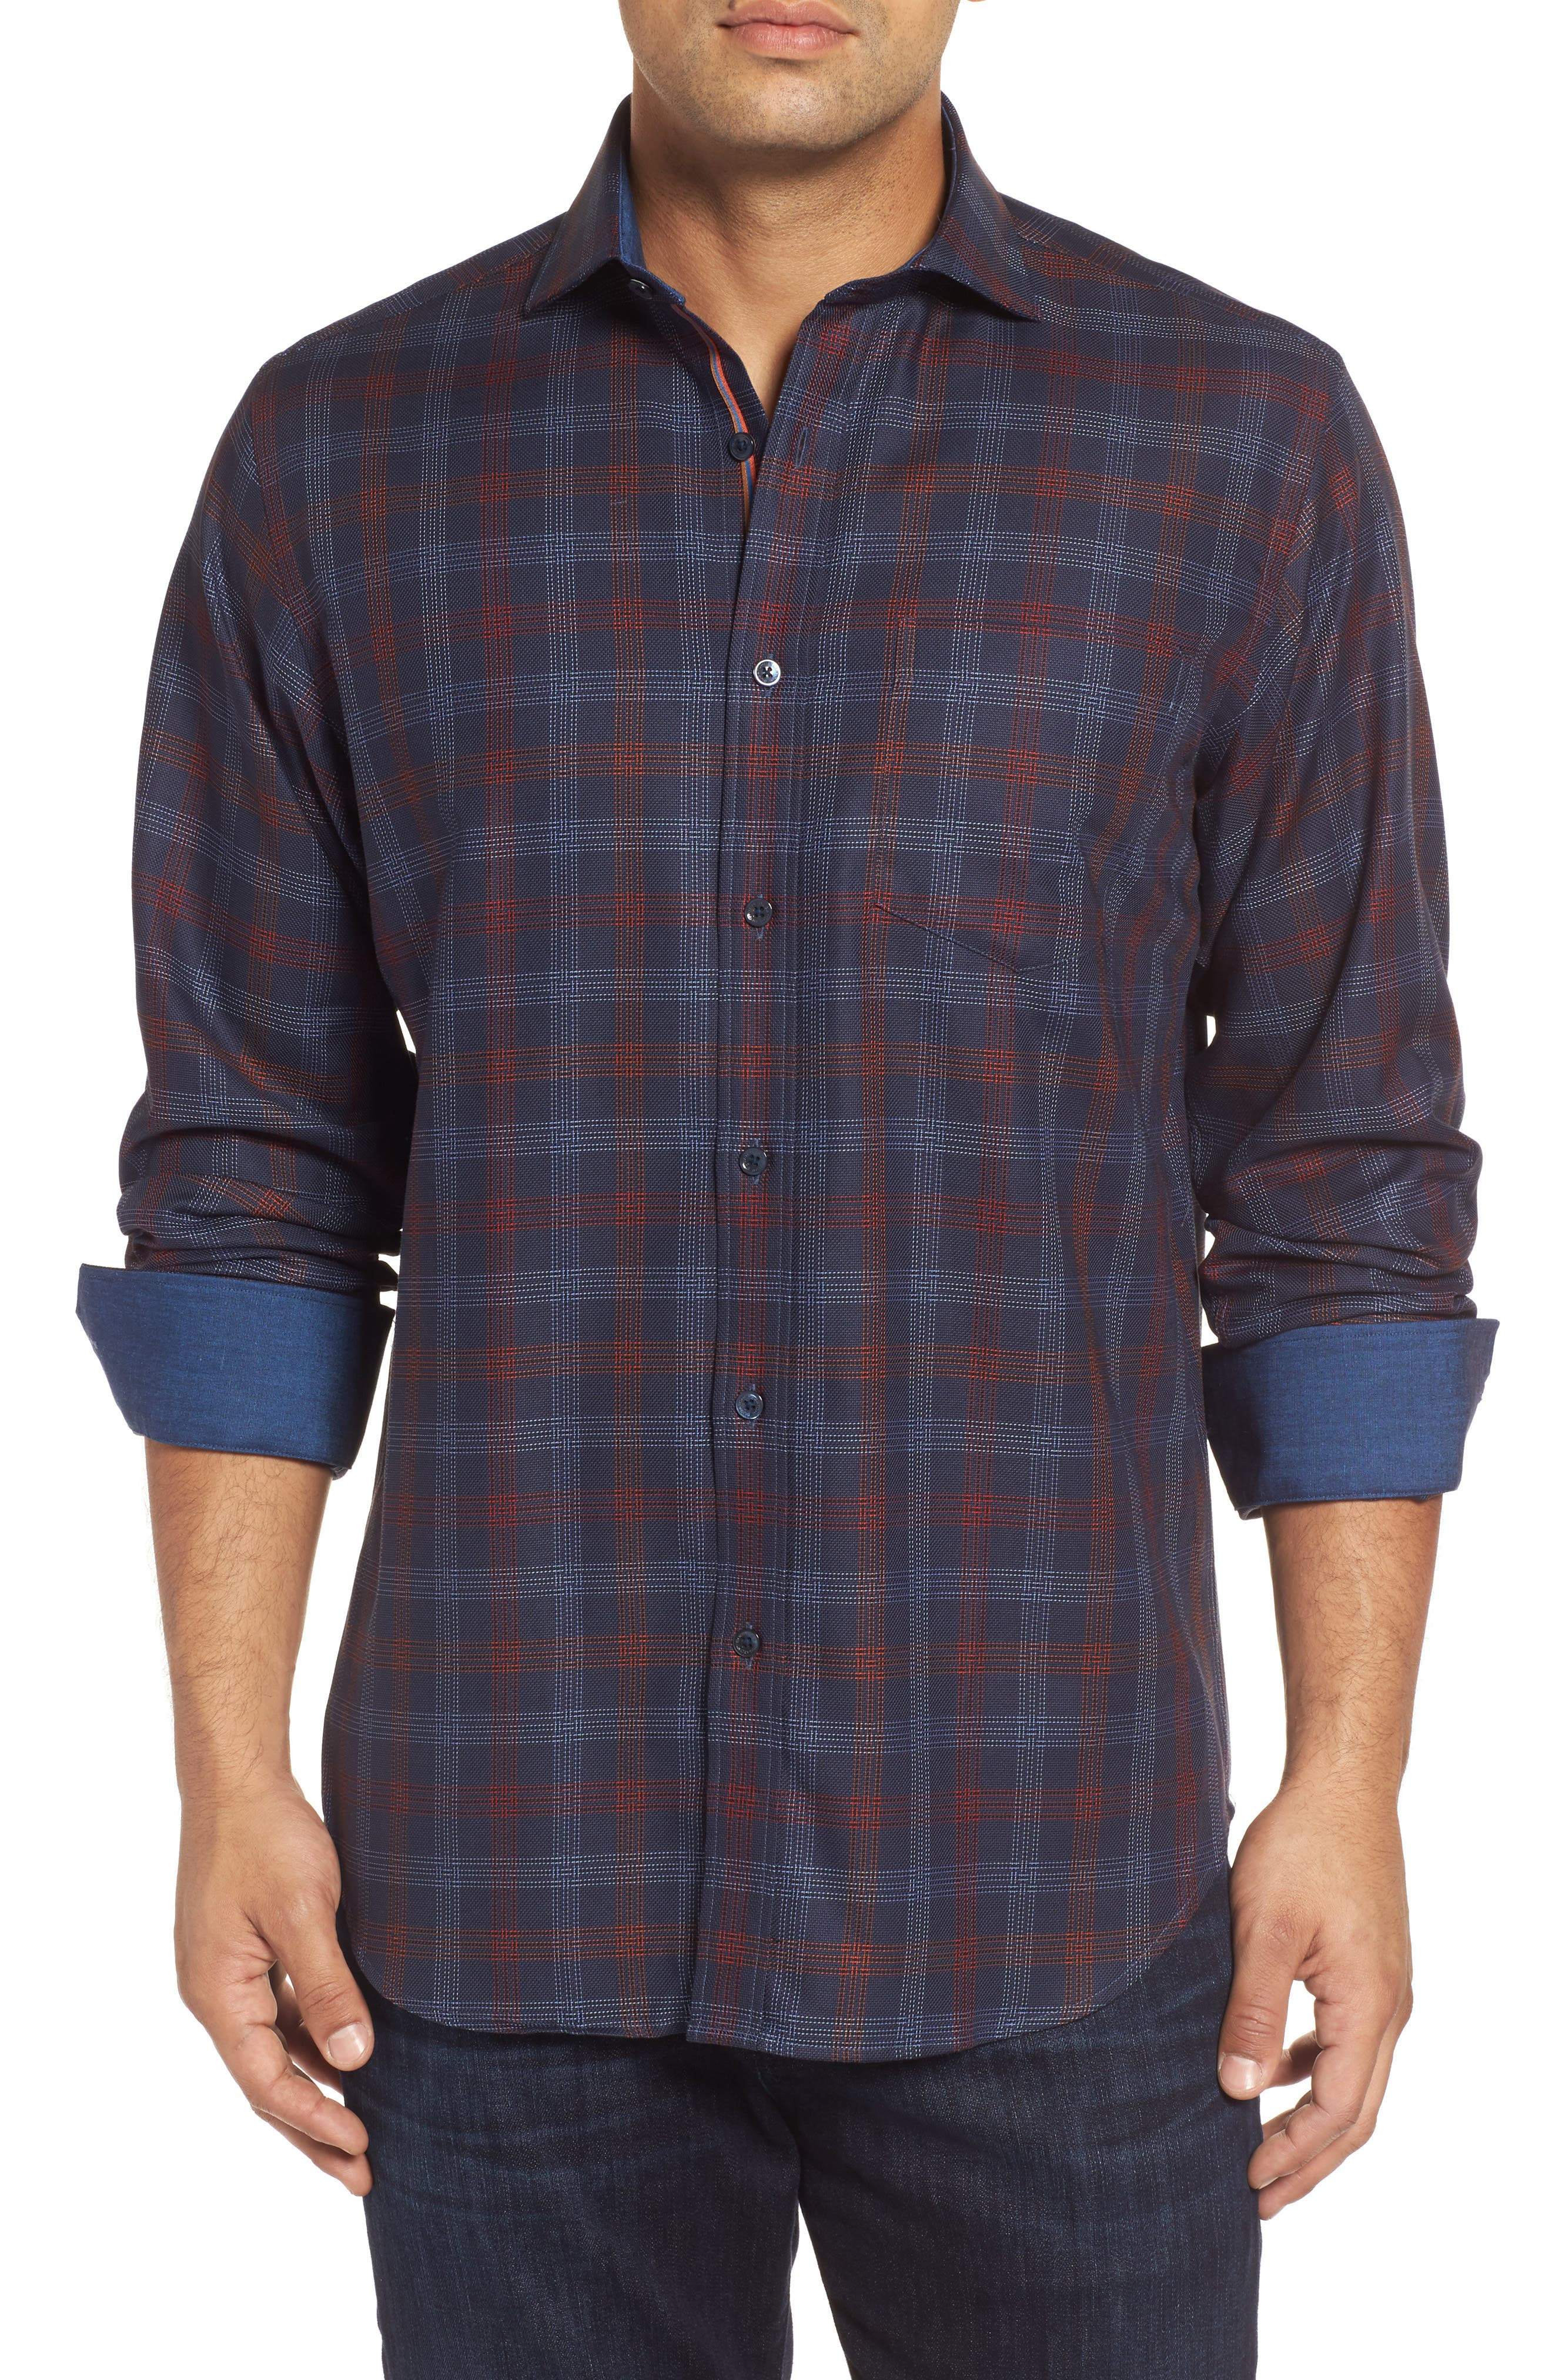 Alternate Image 1 Selected - Bugatchi Classic Fit Pinstripe Check Sport Shirt